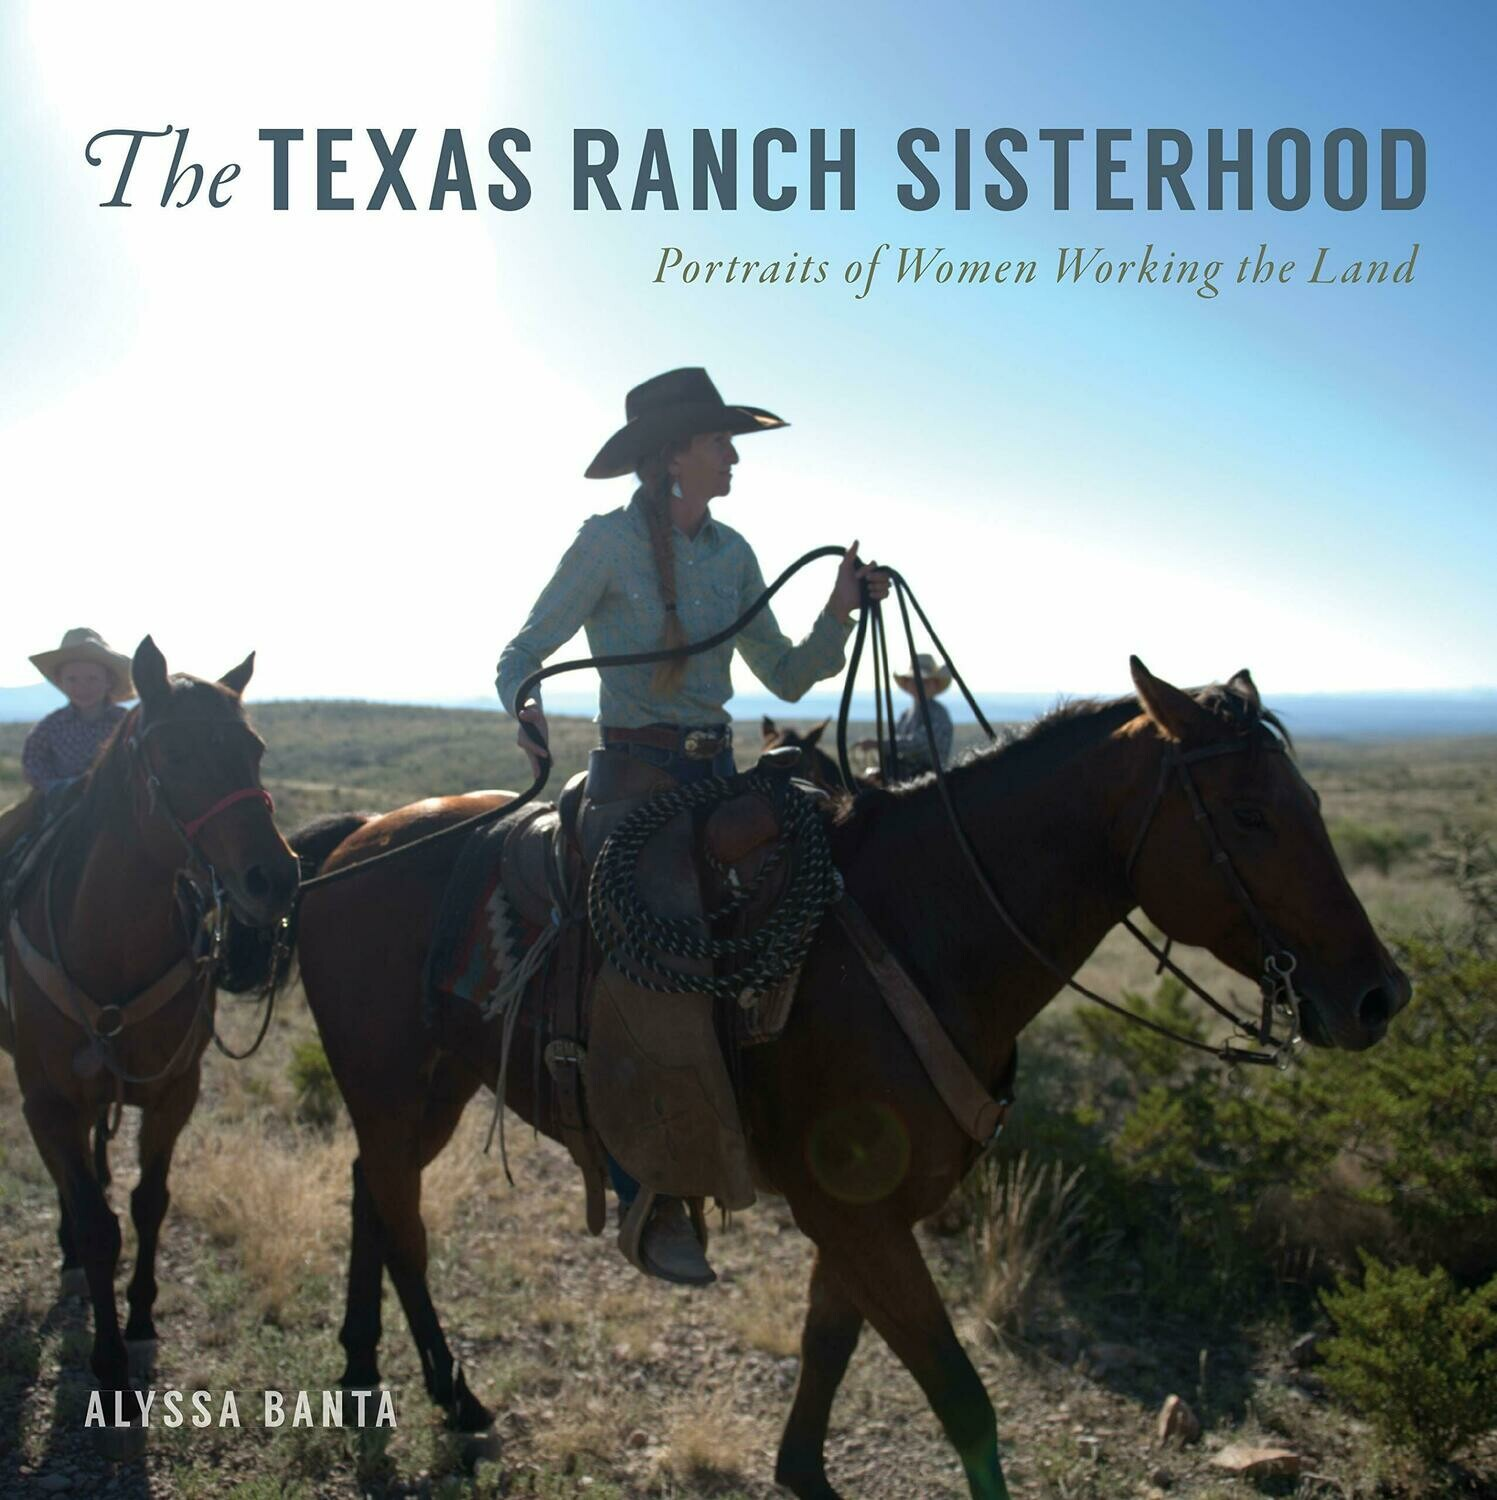 The Texas Ranch Sisterhood Portraits of Women Working the Land